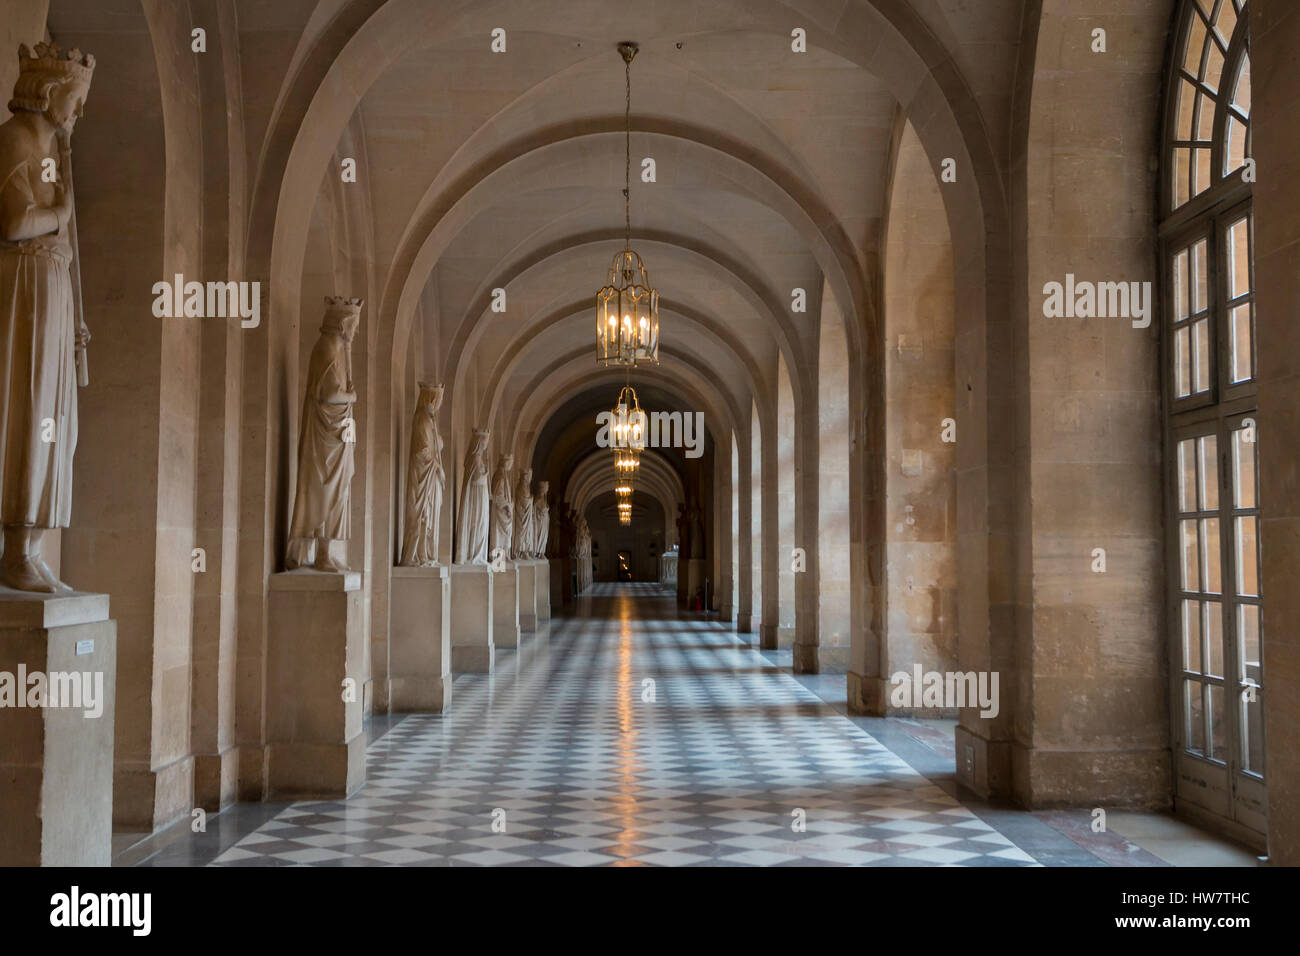 VERSAILLES, FRANCE- OCTOBER 5, 2016: Interior hallway in the Palace of Versailles. - Stock Image